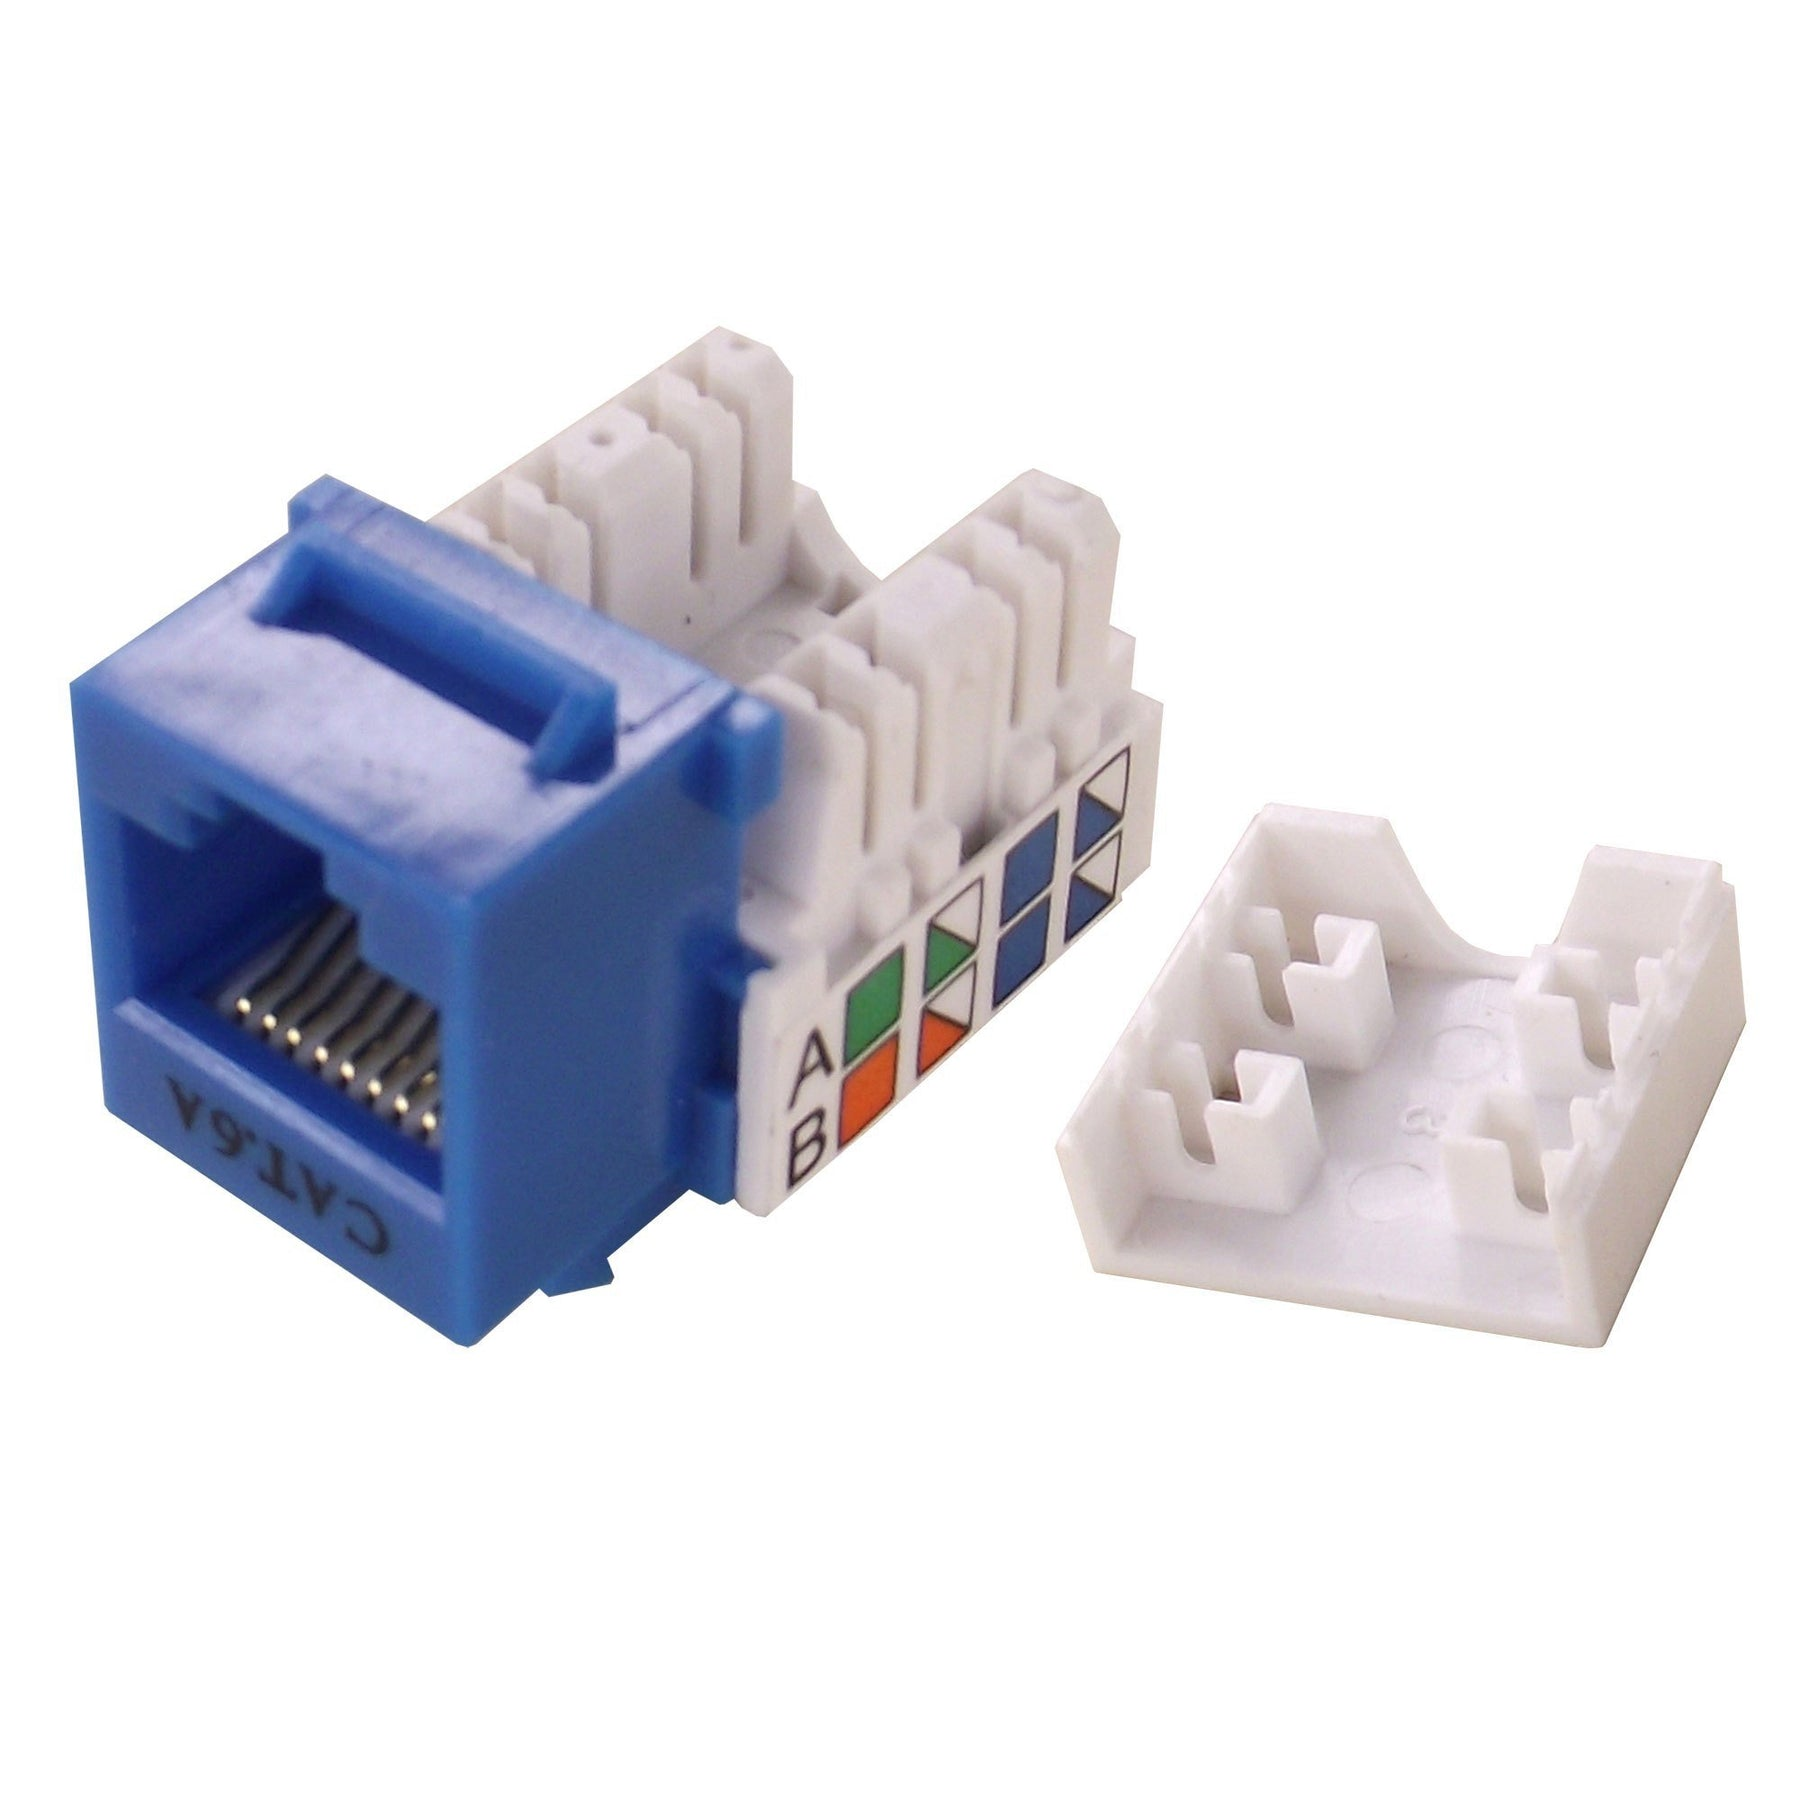 CAT 6A Keystone Jack, RJ45 To 110 Cat A Plug Wiring Diagram on cat 5 termination diagram, cat 2 wiring diagram, cat 6a cabinet, cat 6 jack diagram, cat 6 wiring diagram, cat 6e wiring diagram, cat 6 connectors diagram, cat 4 wiring diagram, cat 6a cable, cat 3 wiring diagram, cat 6 termination diagram, cat 5e wiring diagram, cat 5 wiring diagram, cat 7 wiring diagram, category 6 ethernet cable diagram, cat 5b wiring diagram, cat 6a standards, cat 6 cable diagram, cat 6 pin diagram, cat 5 wiring for female,